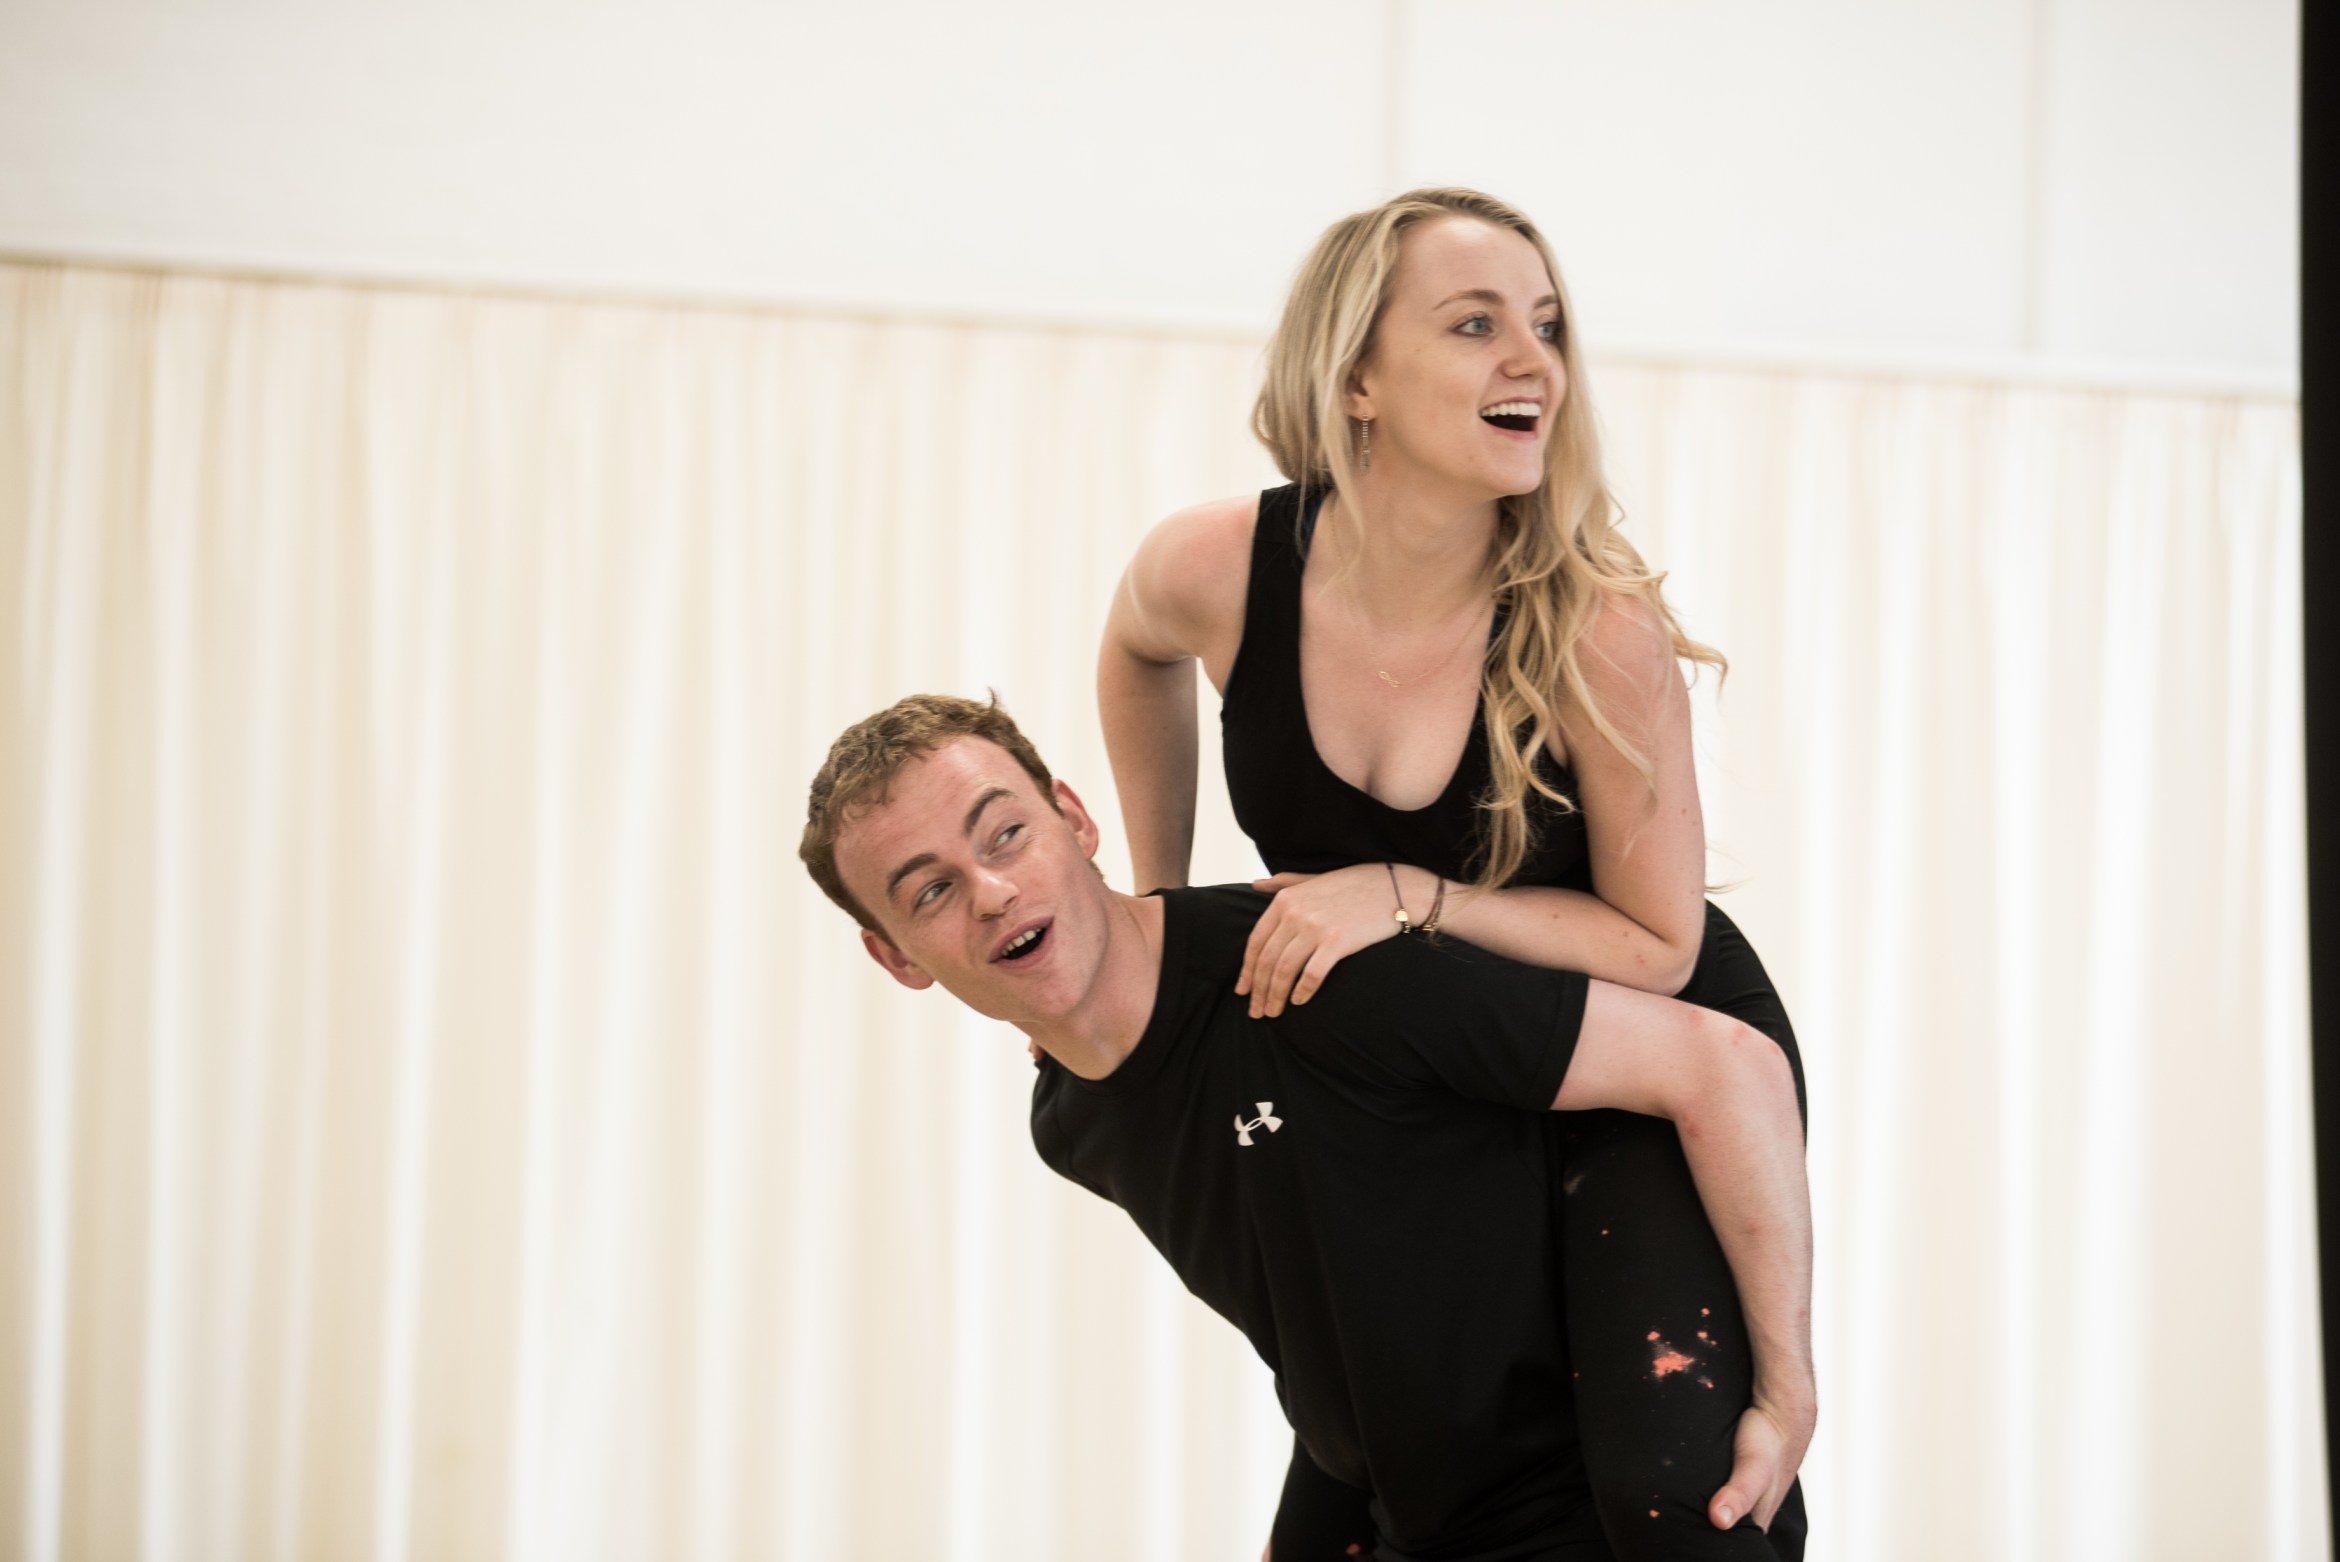 Disco Pigs - Colin Campbell and Evanna Lynch - photos by Savannah Photographic 1